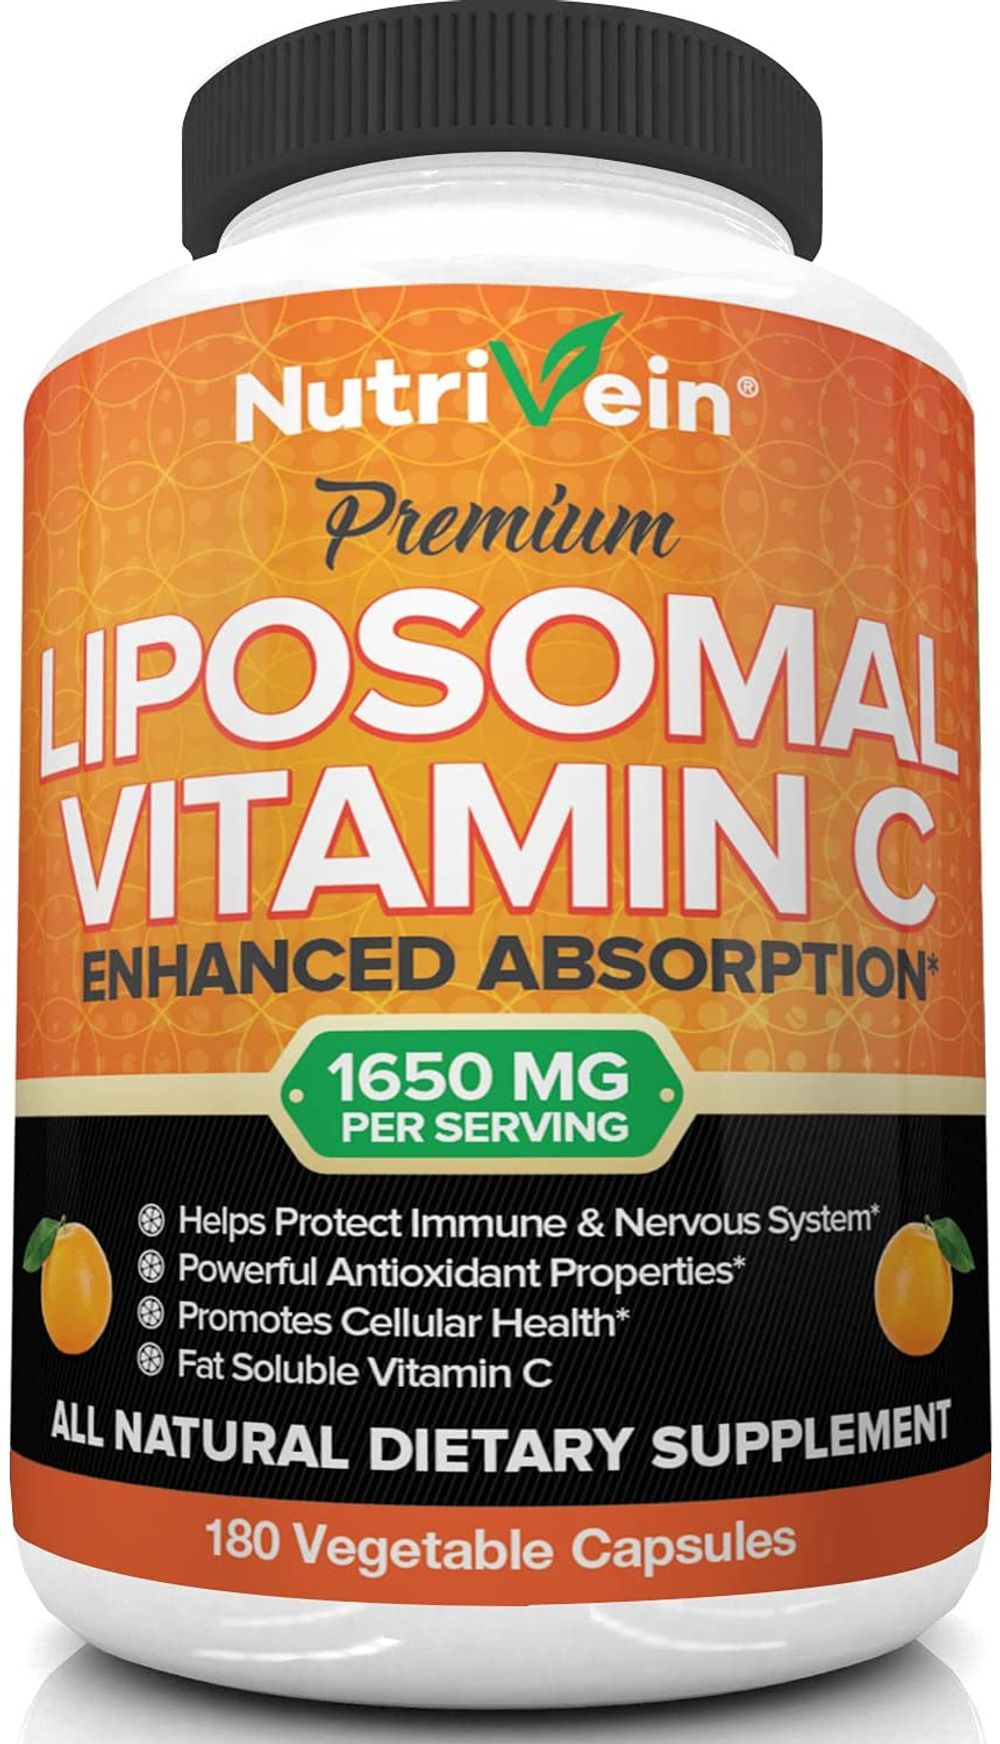 Nutrivein Liposomal Vitamin C 1650mg - 180 Capsules - High Absorption Ascorbic Acid - Supports Immune System and Collagen Booster - Powerful Antioxidant High Dose Fat Soluble Supplement